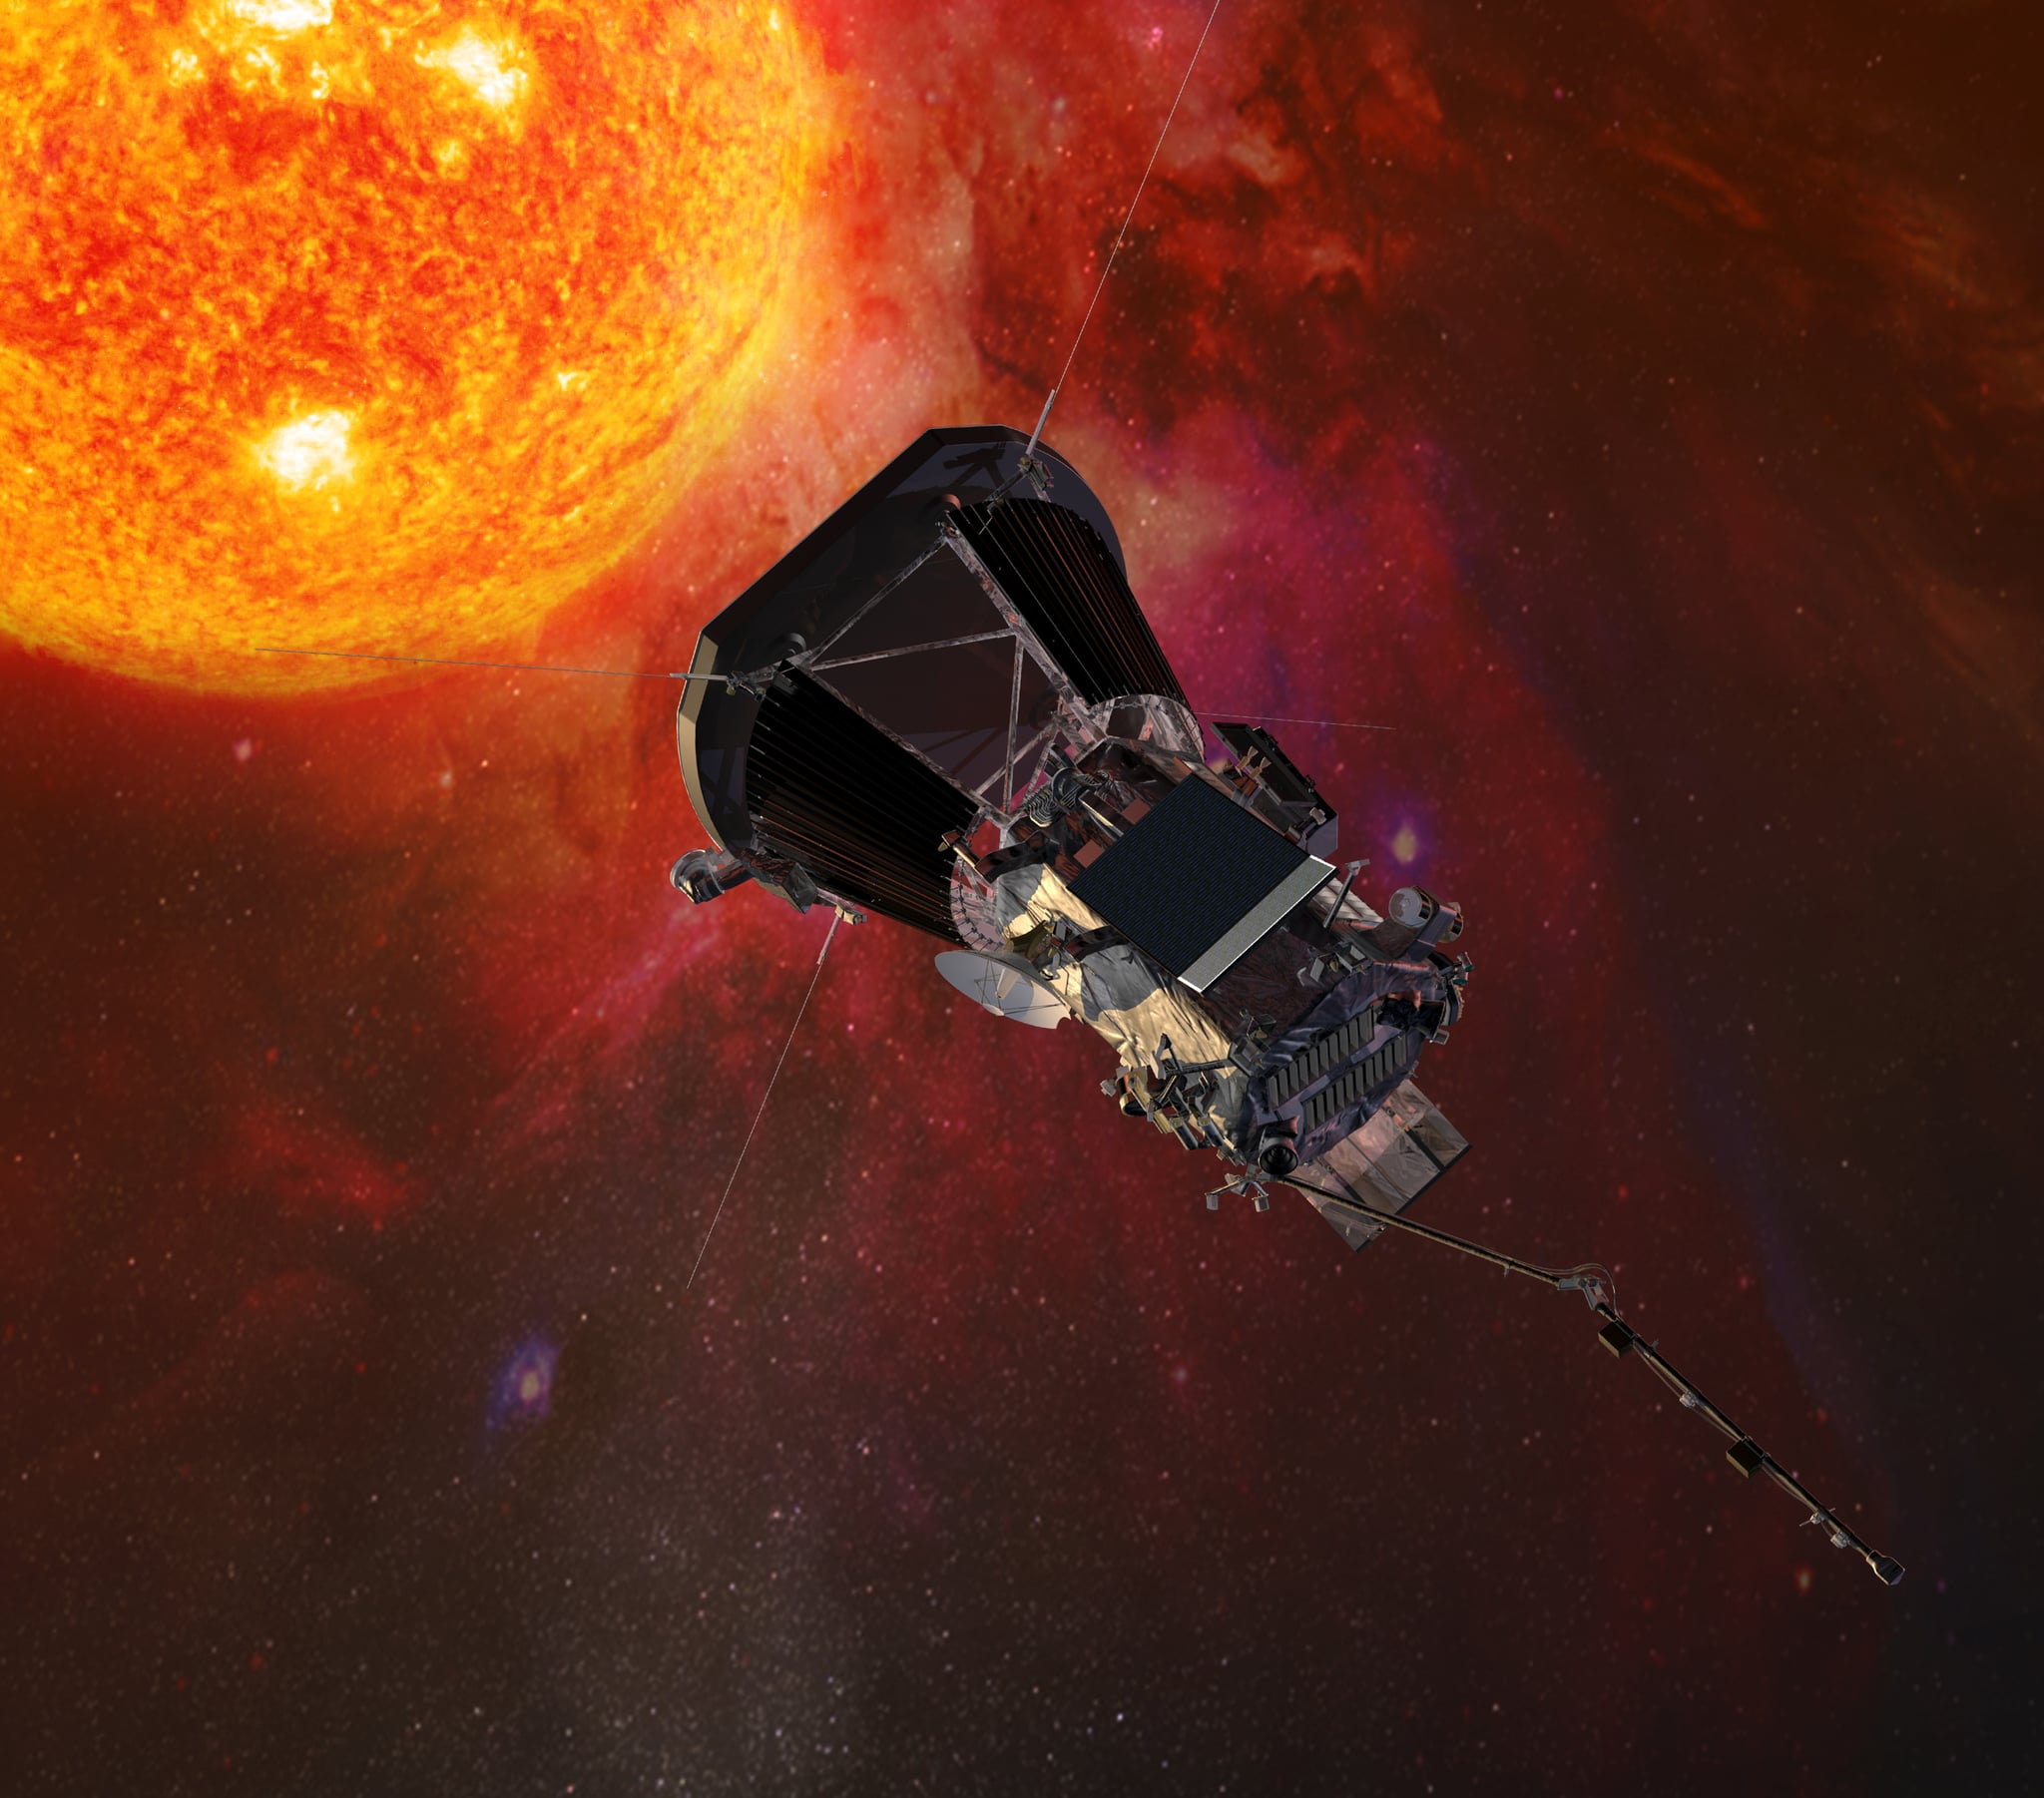 NASA all set to launch world's first mission to Sun next year